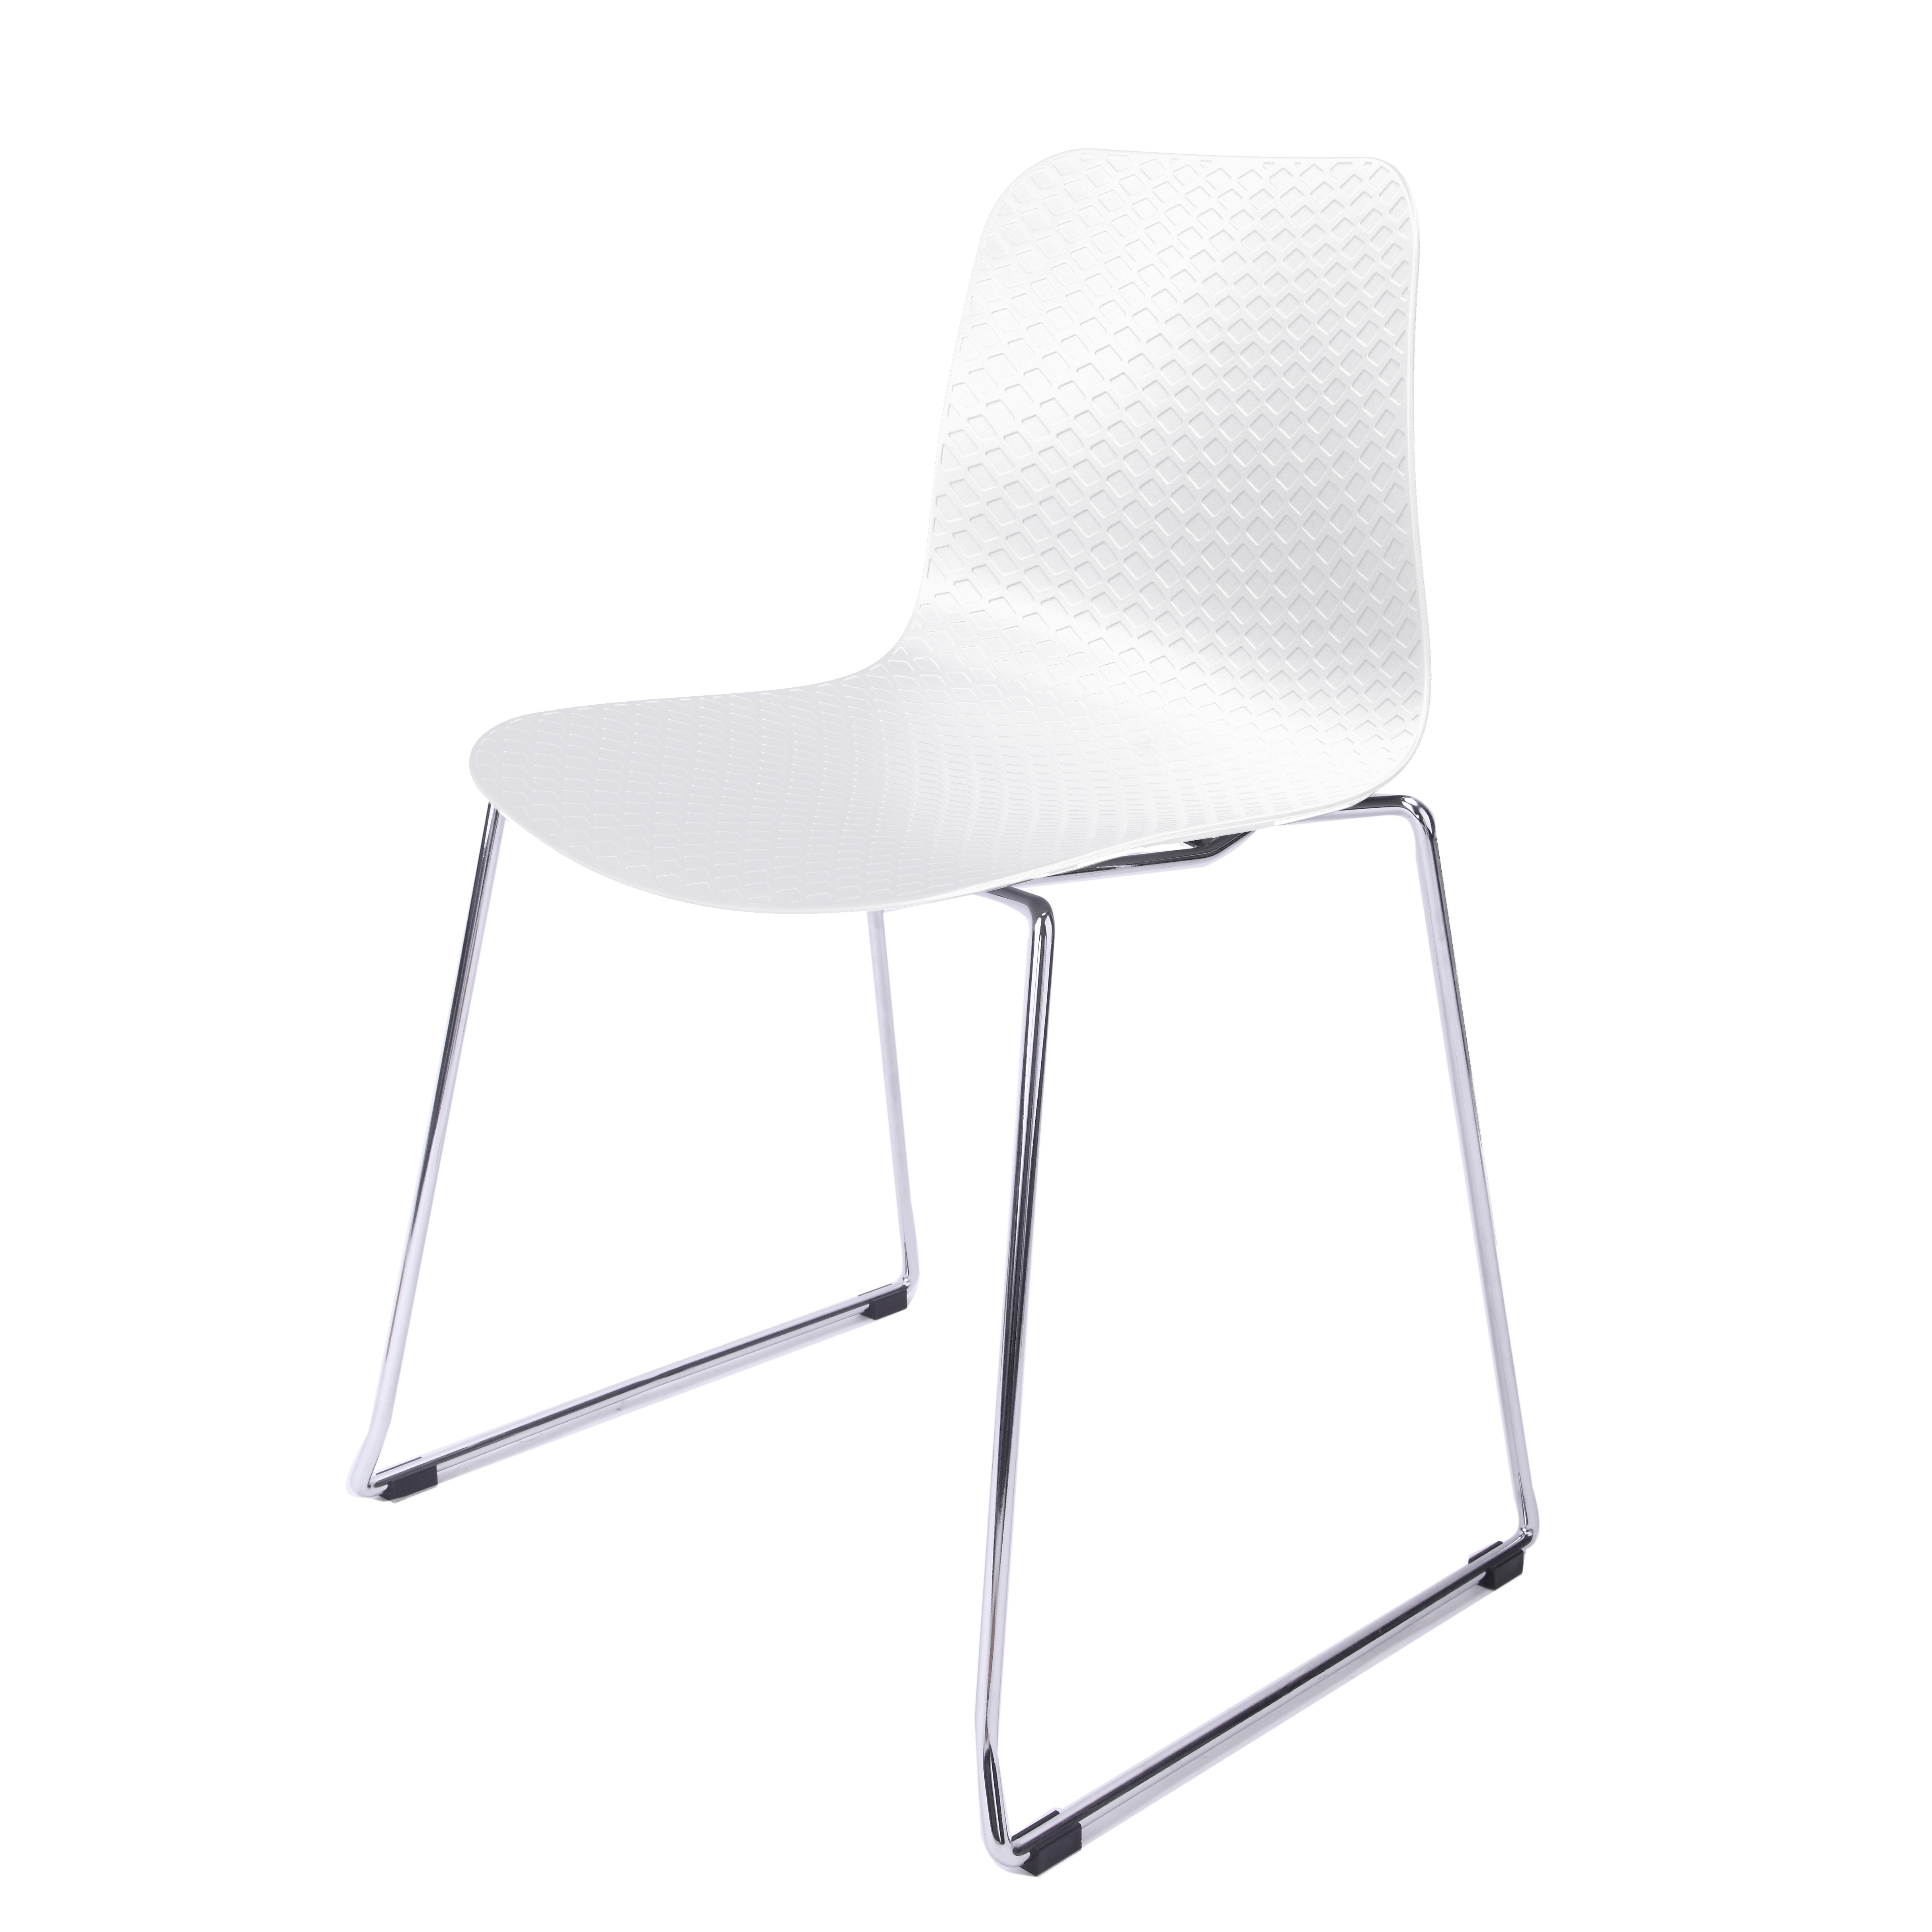 Metal Chairs Hebe Series White Dining Shell Side Chair Molded Plastic Steel Metal Legs